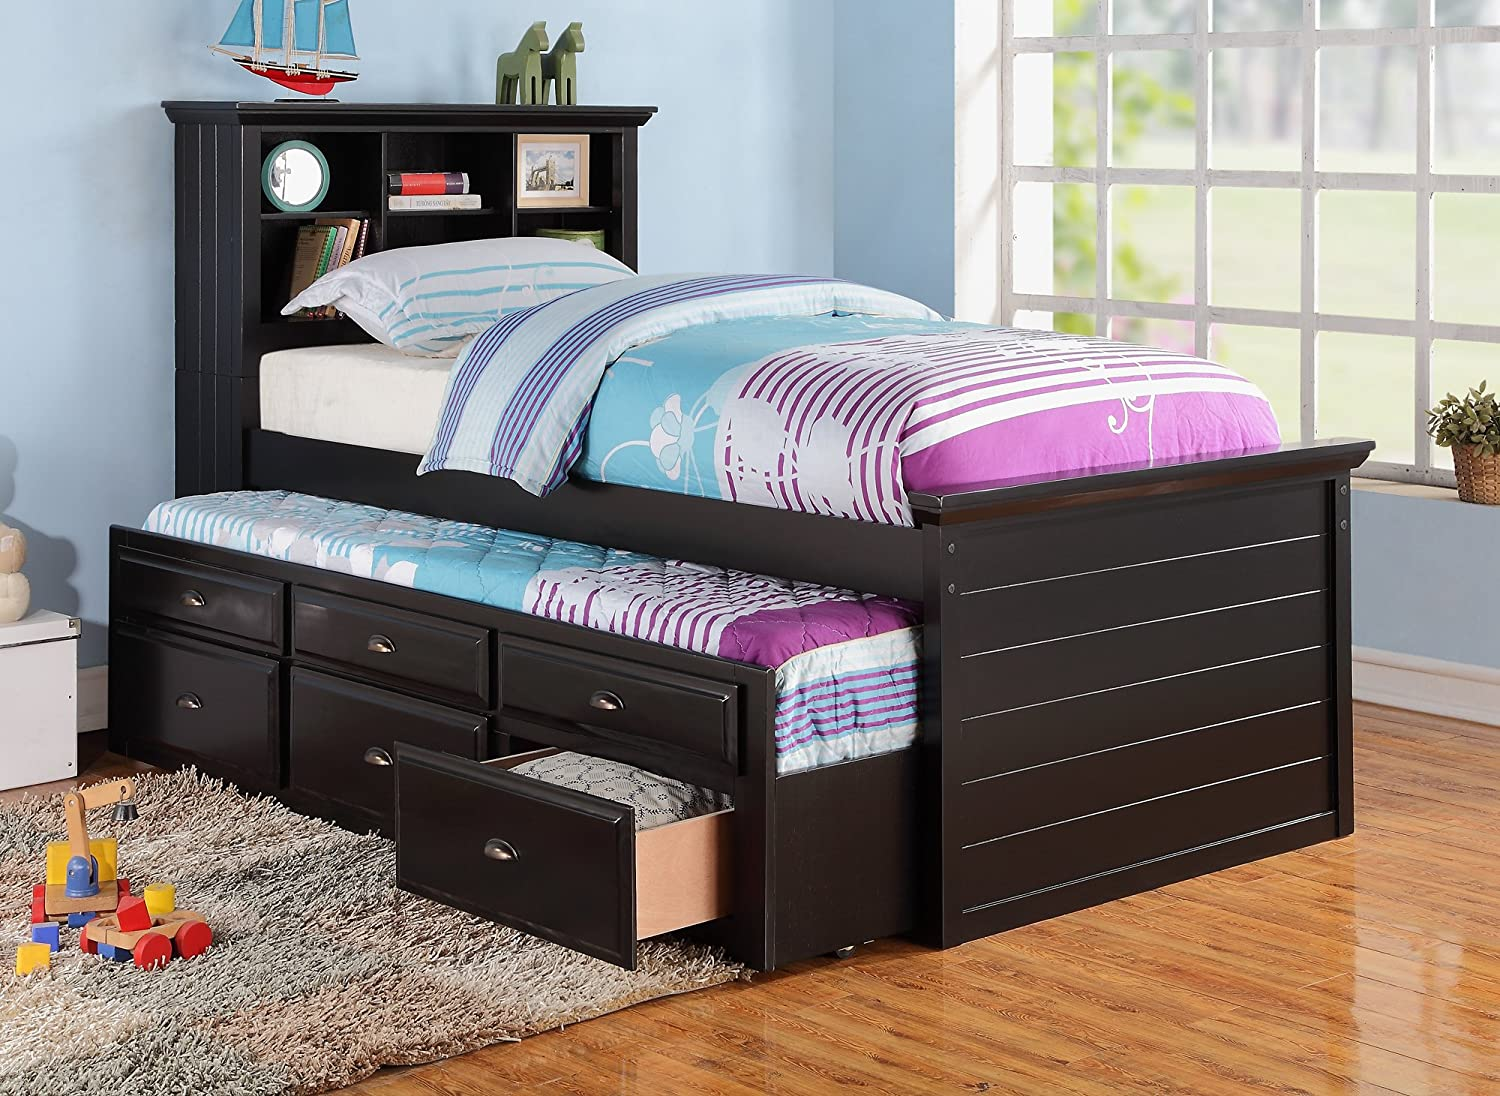 BLACK CAPTAIN TWIN BOOKCASE BED W-TRUNDLE BED AND 3 DRAWERS STORAGE